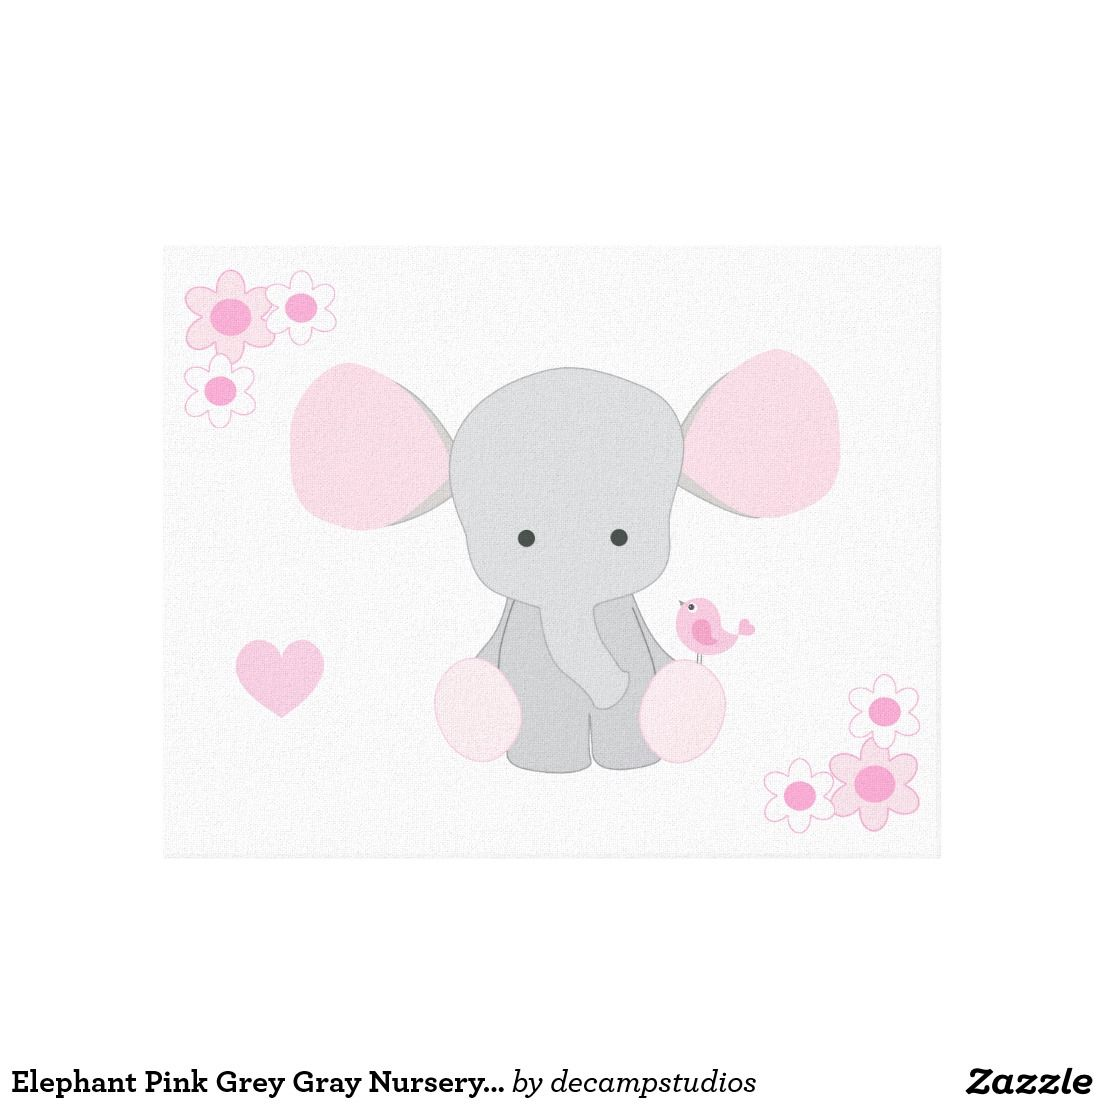 Elephant nursery wall art print mom baby dad by rizzleandrugee - Elephant Pink Grey Gray Nursery Baby Girl Canvas Wall Art Print Decampstudios